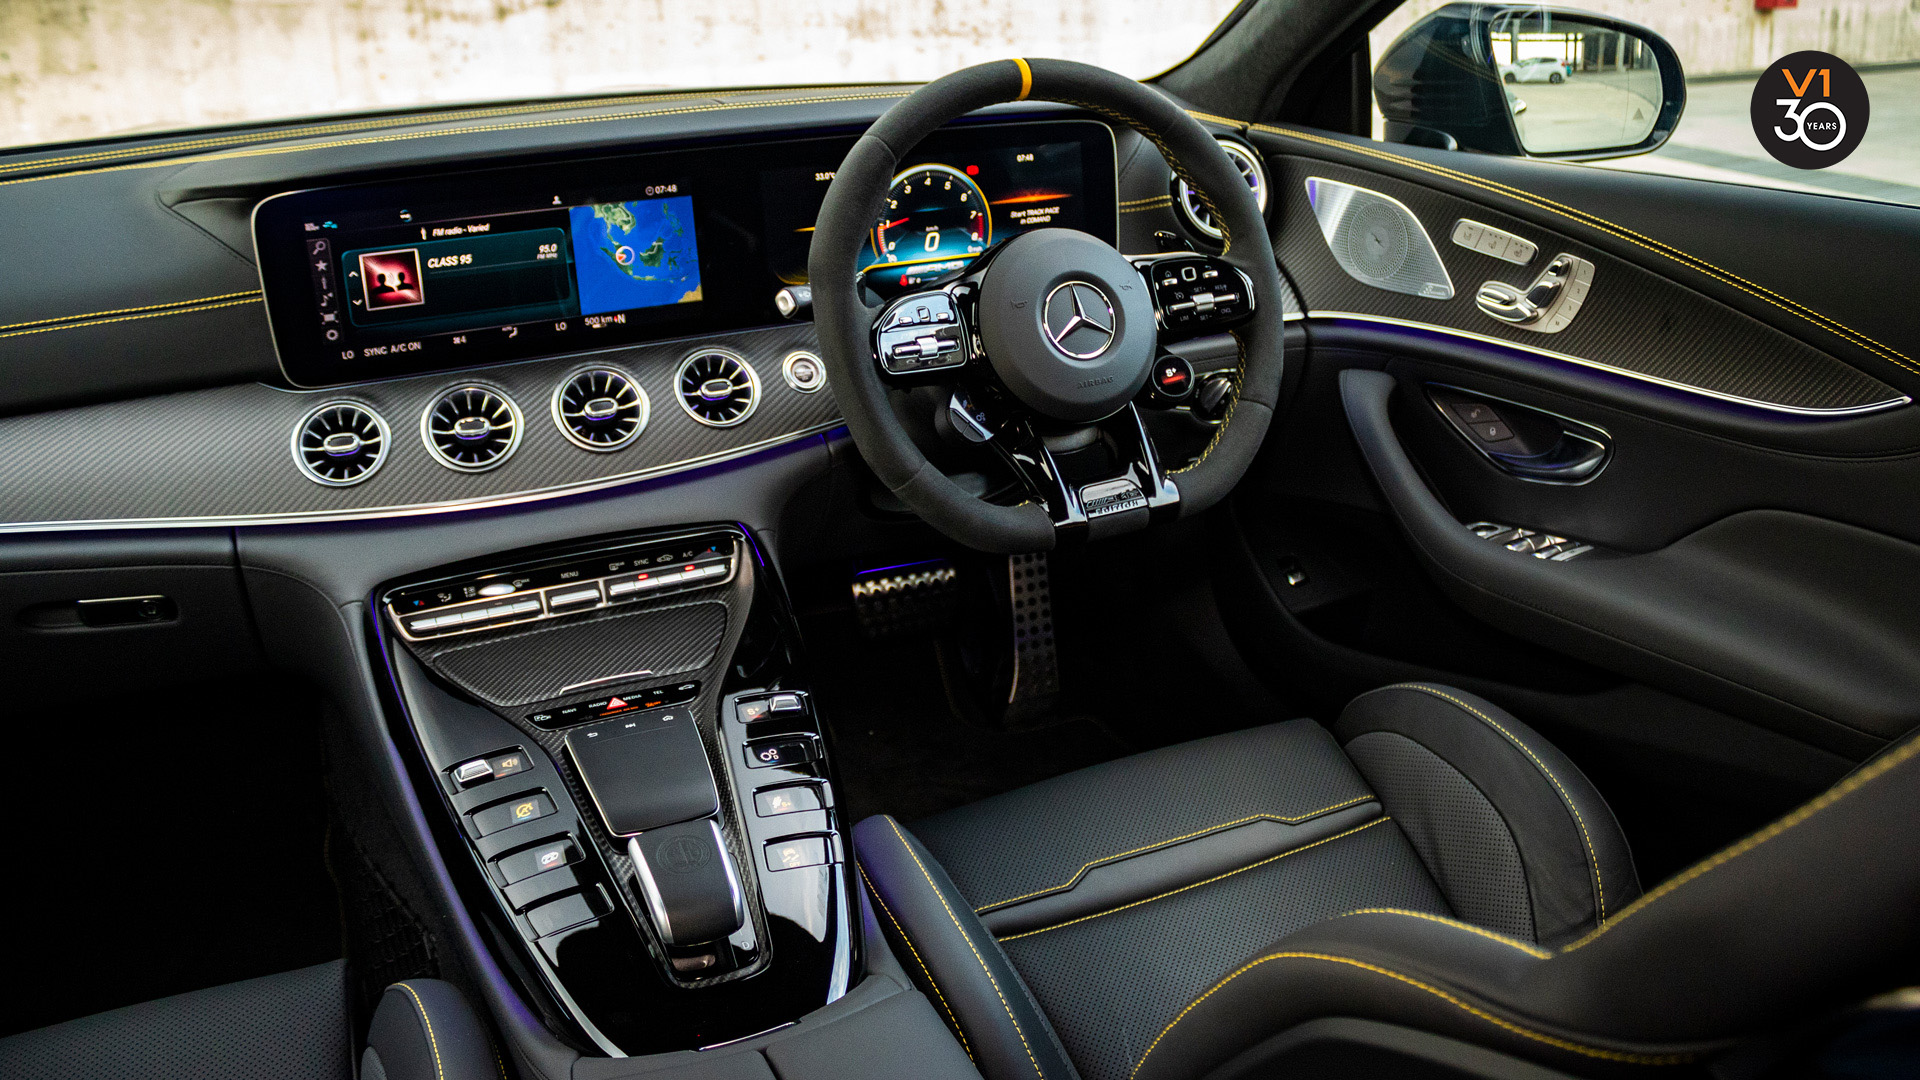 Mercedes GT63 S 4Matic+ Edition 1 AMG - Infotainment System